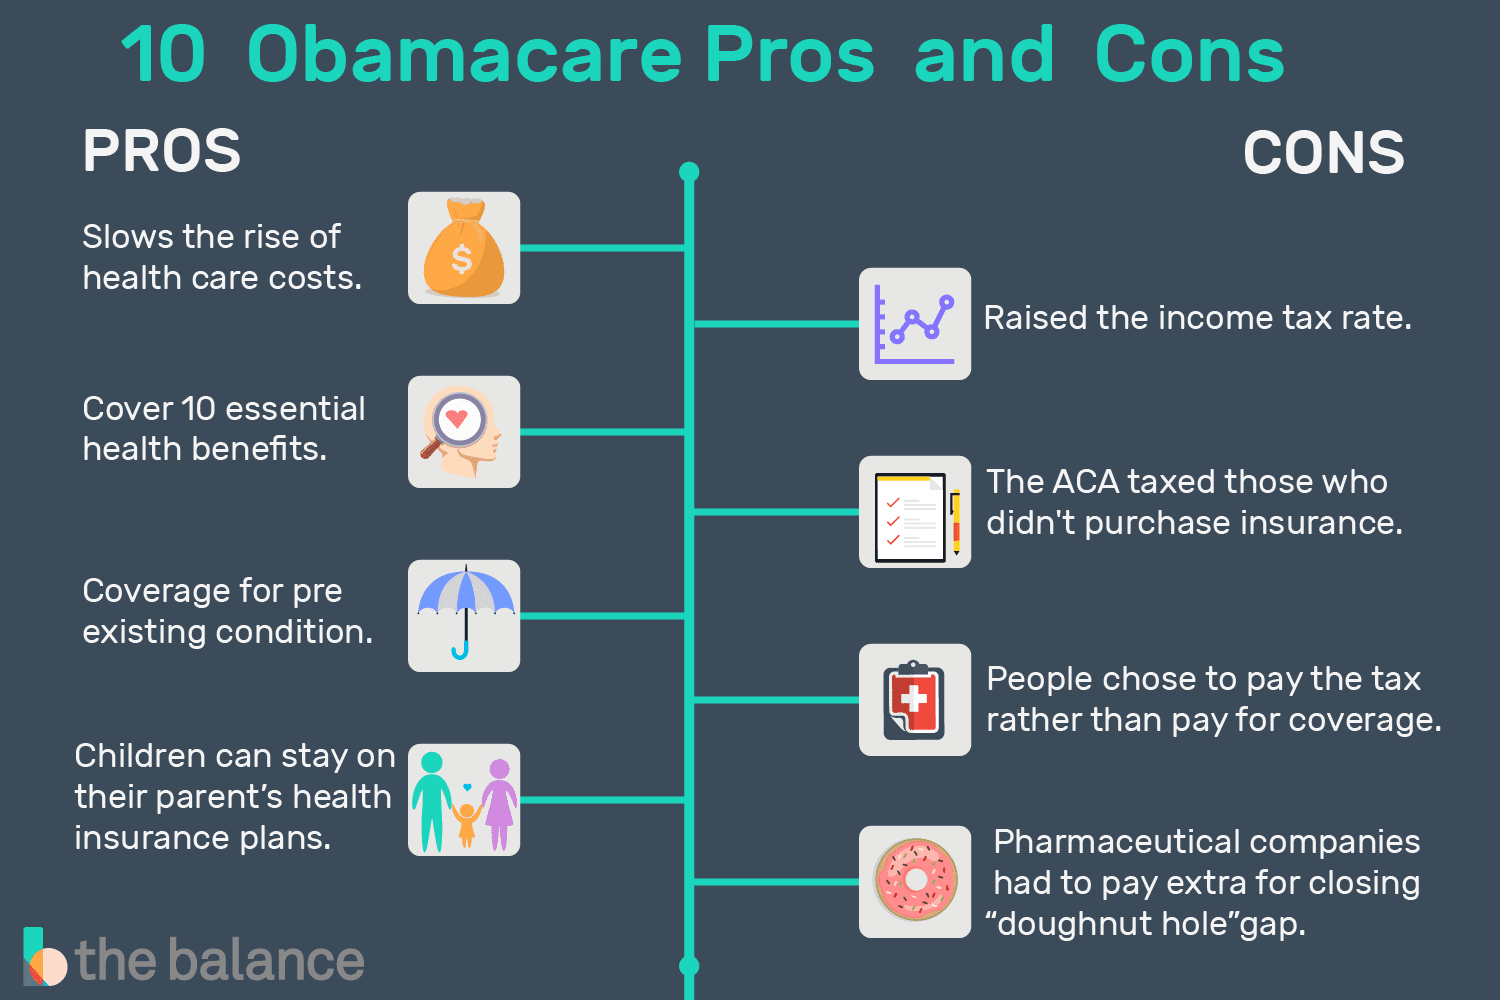 obama care pros and cons Pros and cons of obamacare by carlos vazquez and marco best of late night on obamacare small business with over 50 full time employees are required to provide.